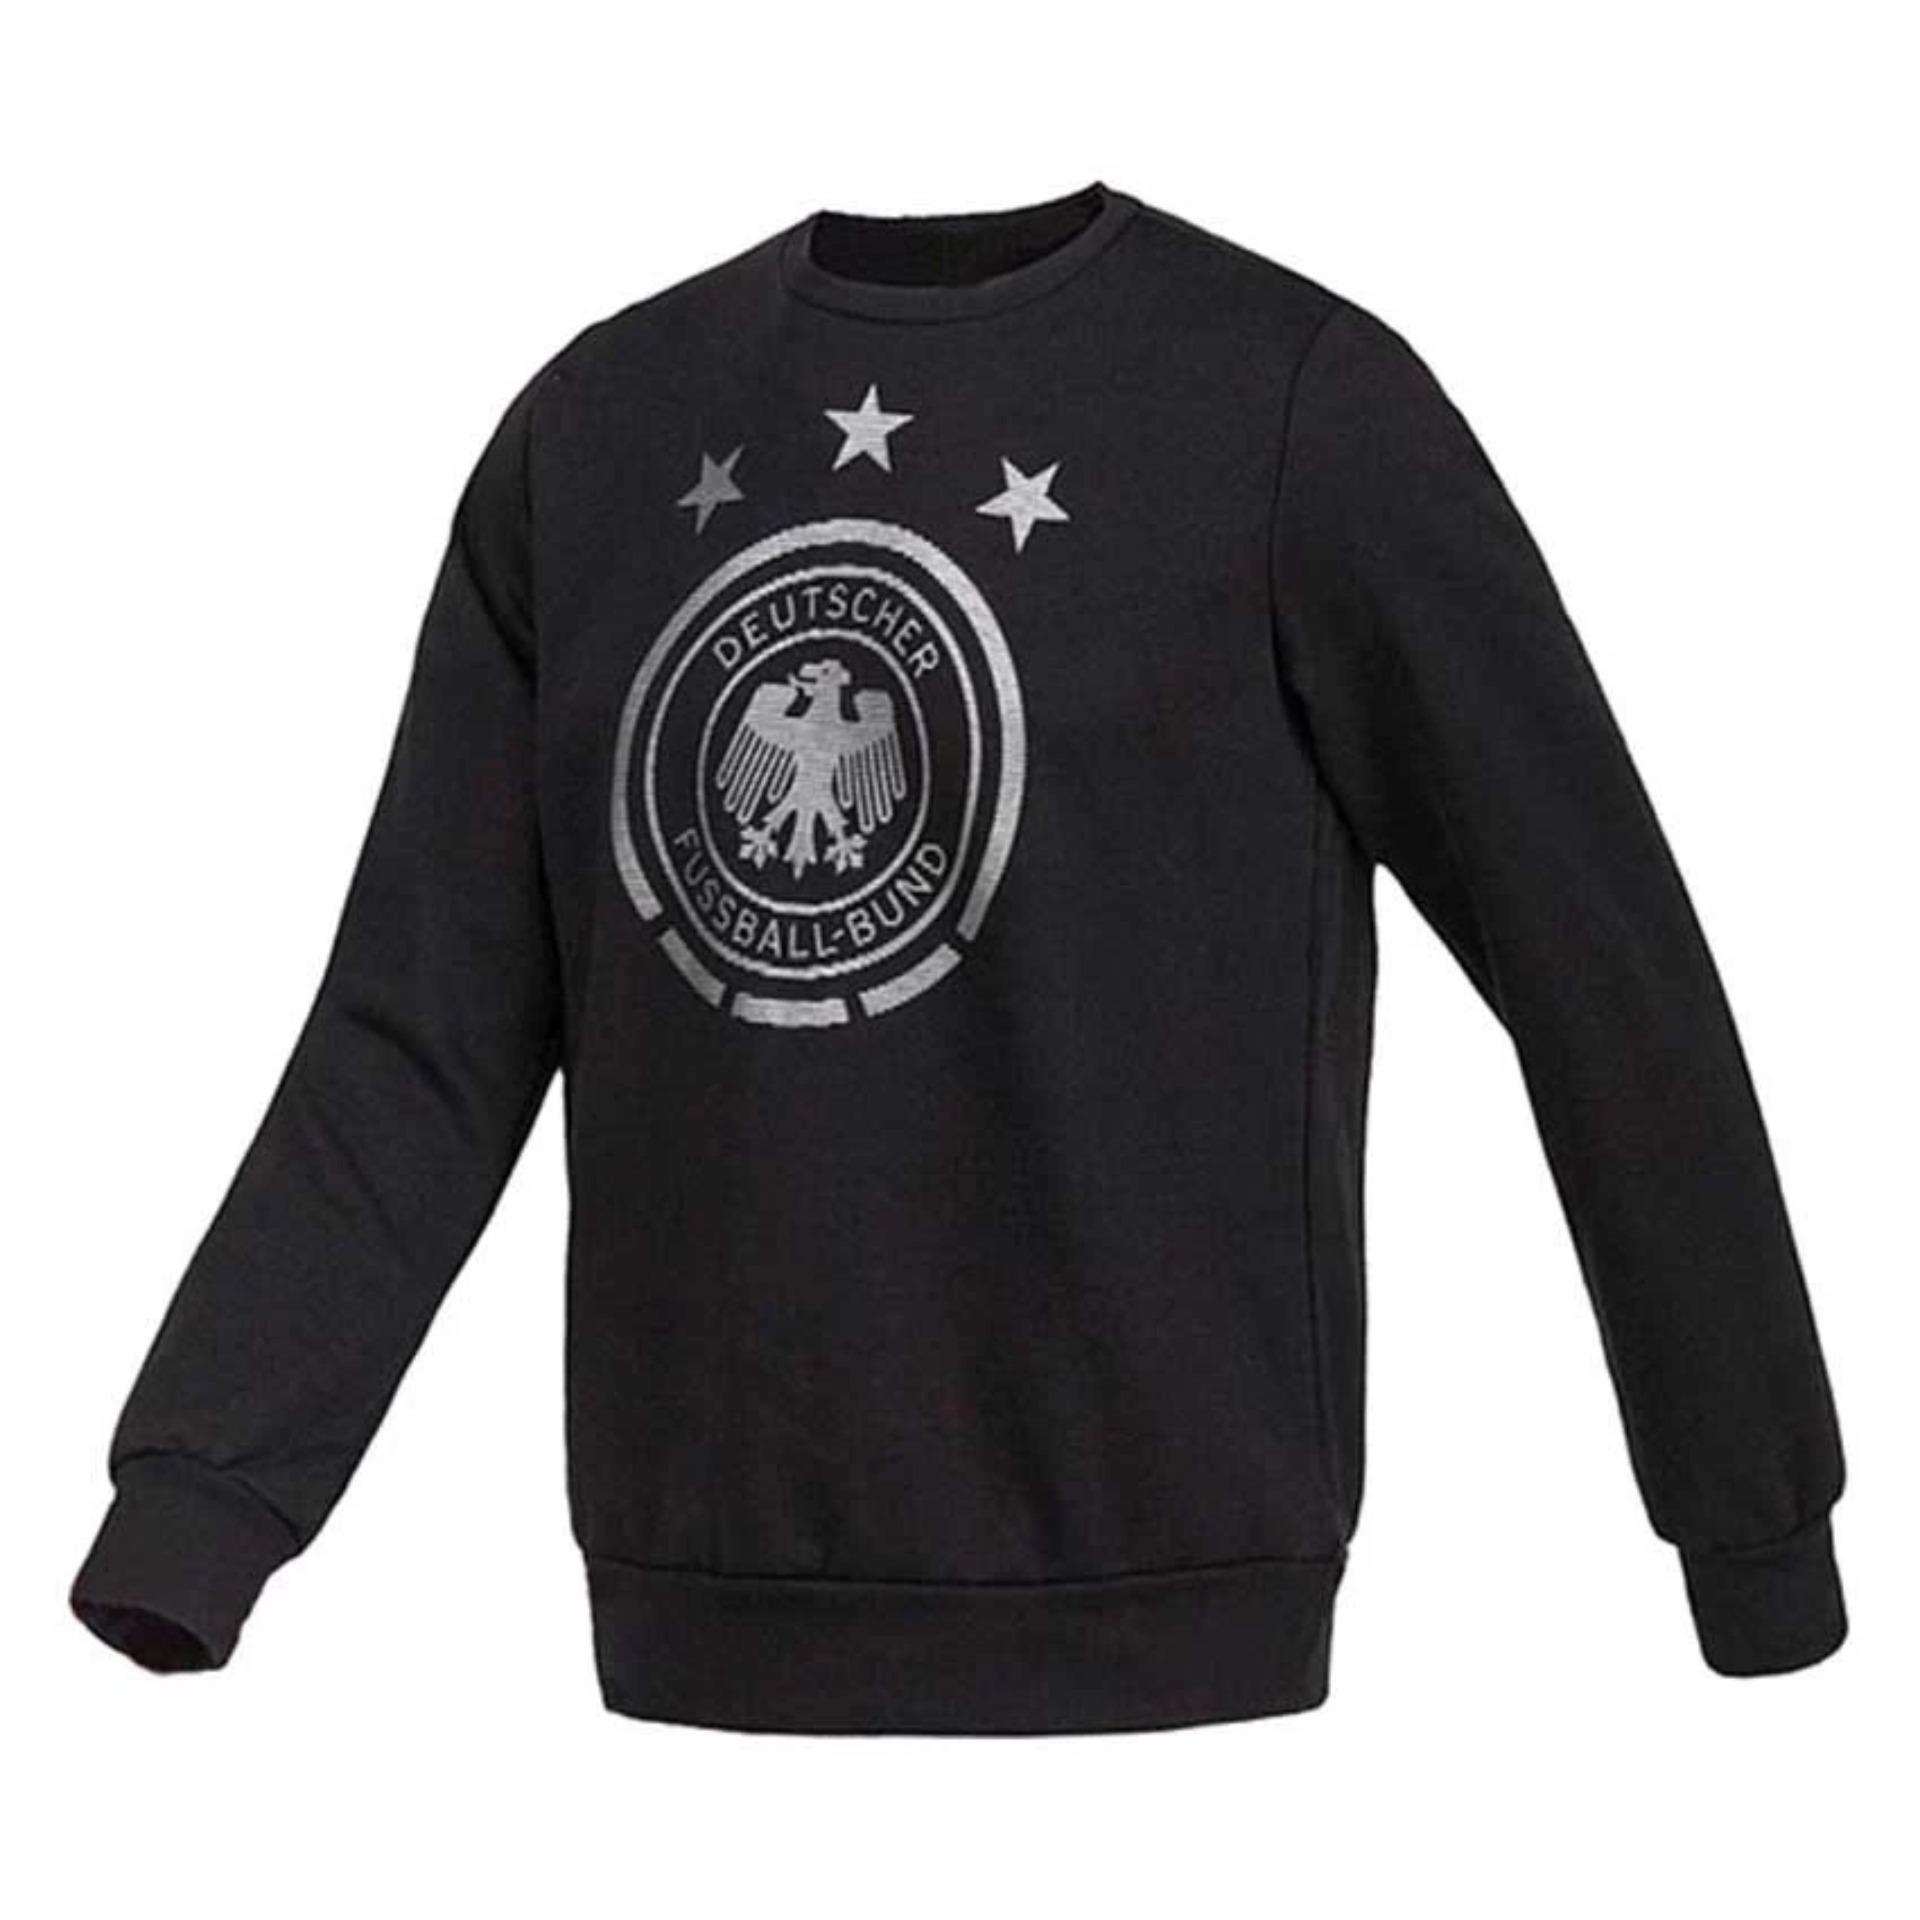 Model Sweater Germany Hitam Terbaru